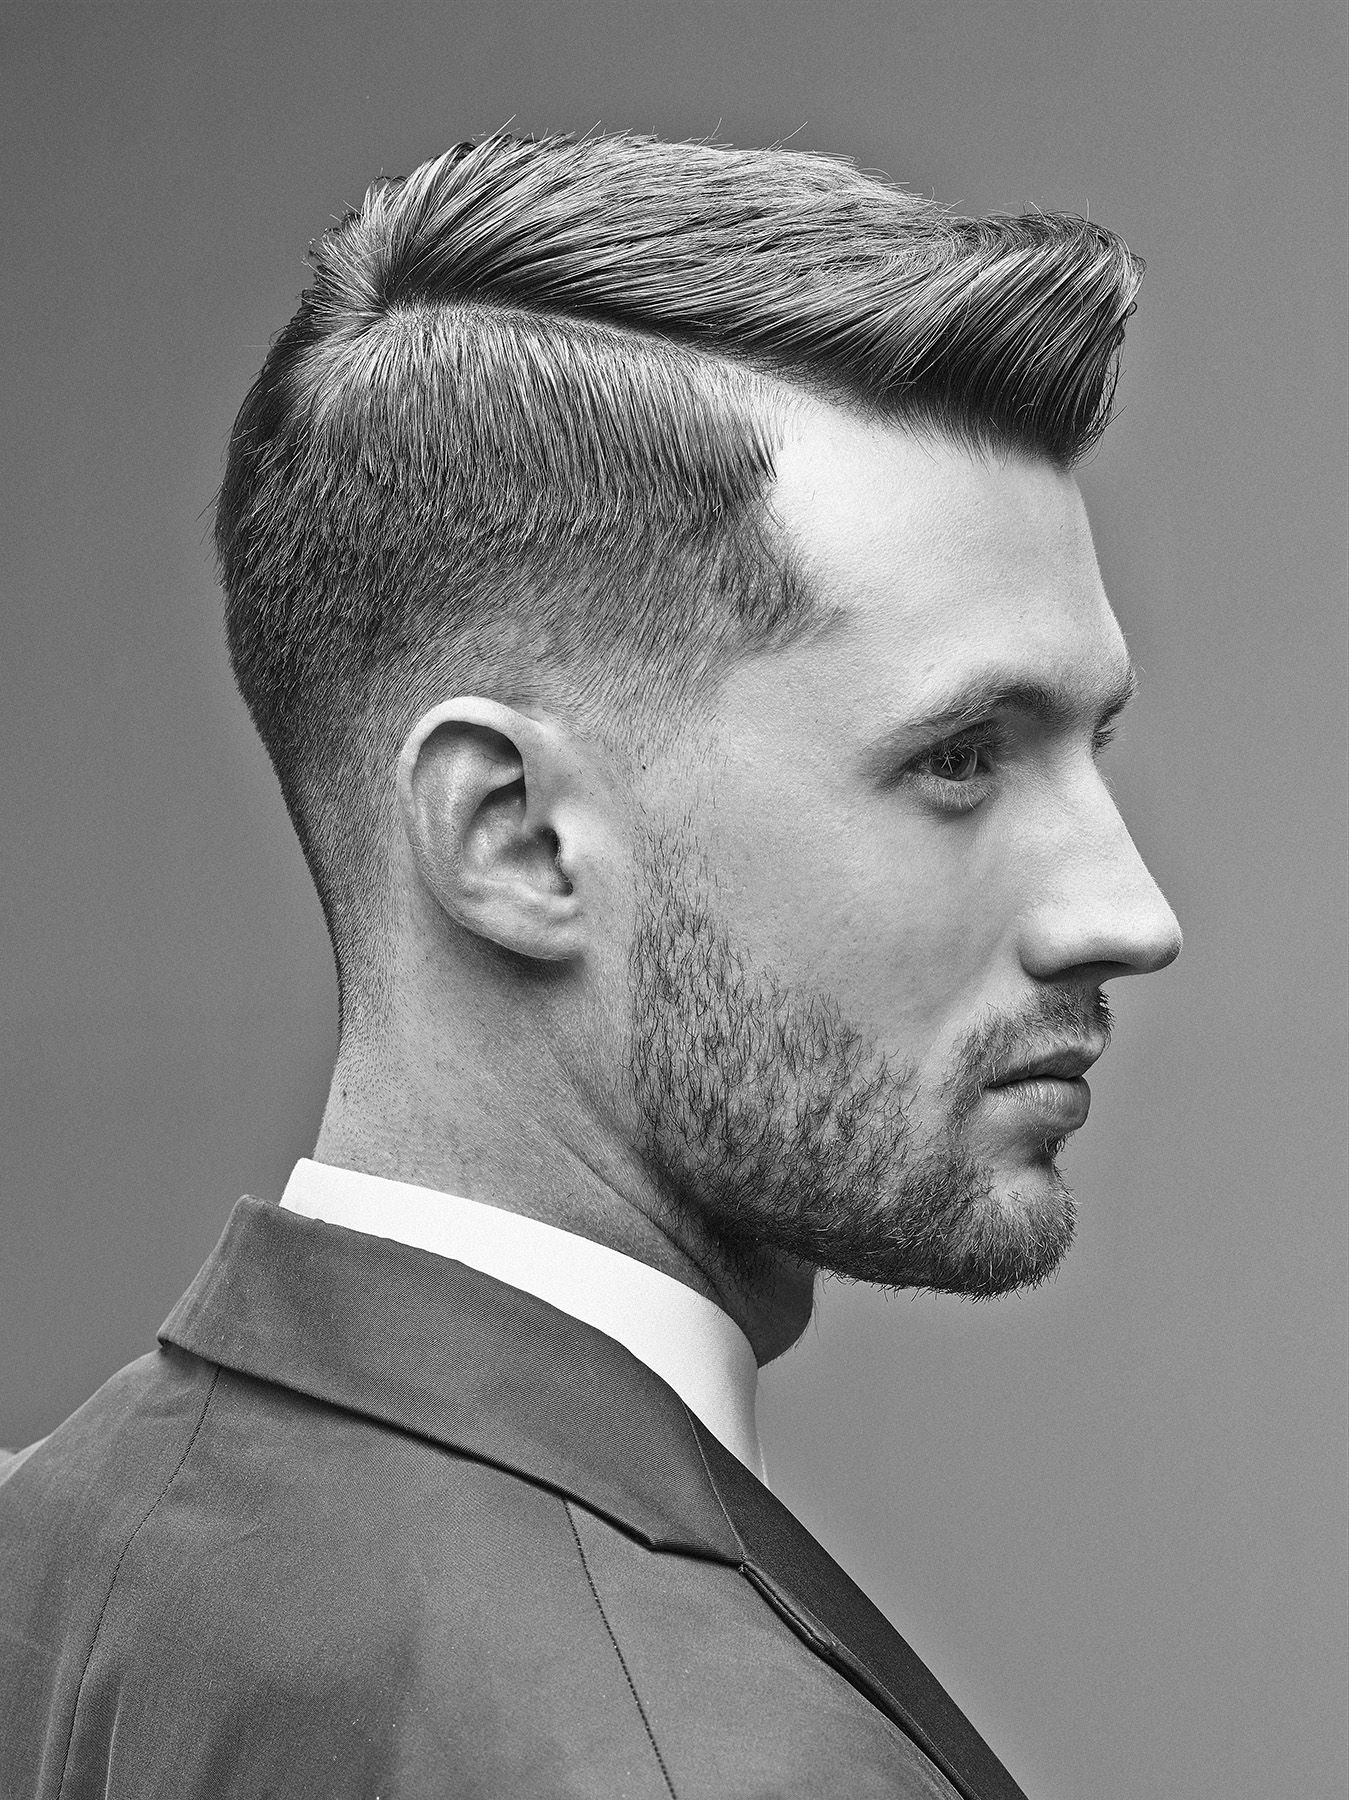 14 of the most gorgeous, well-groomed guys on the globe